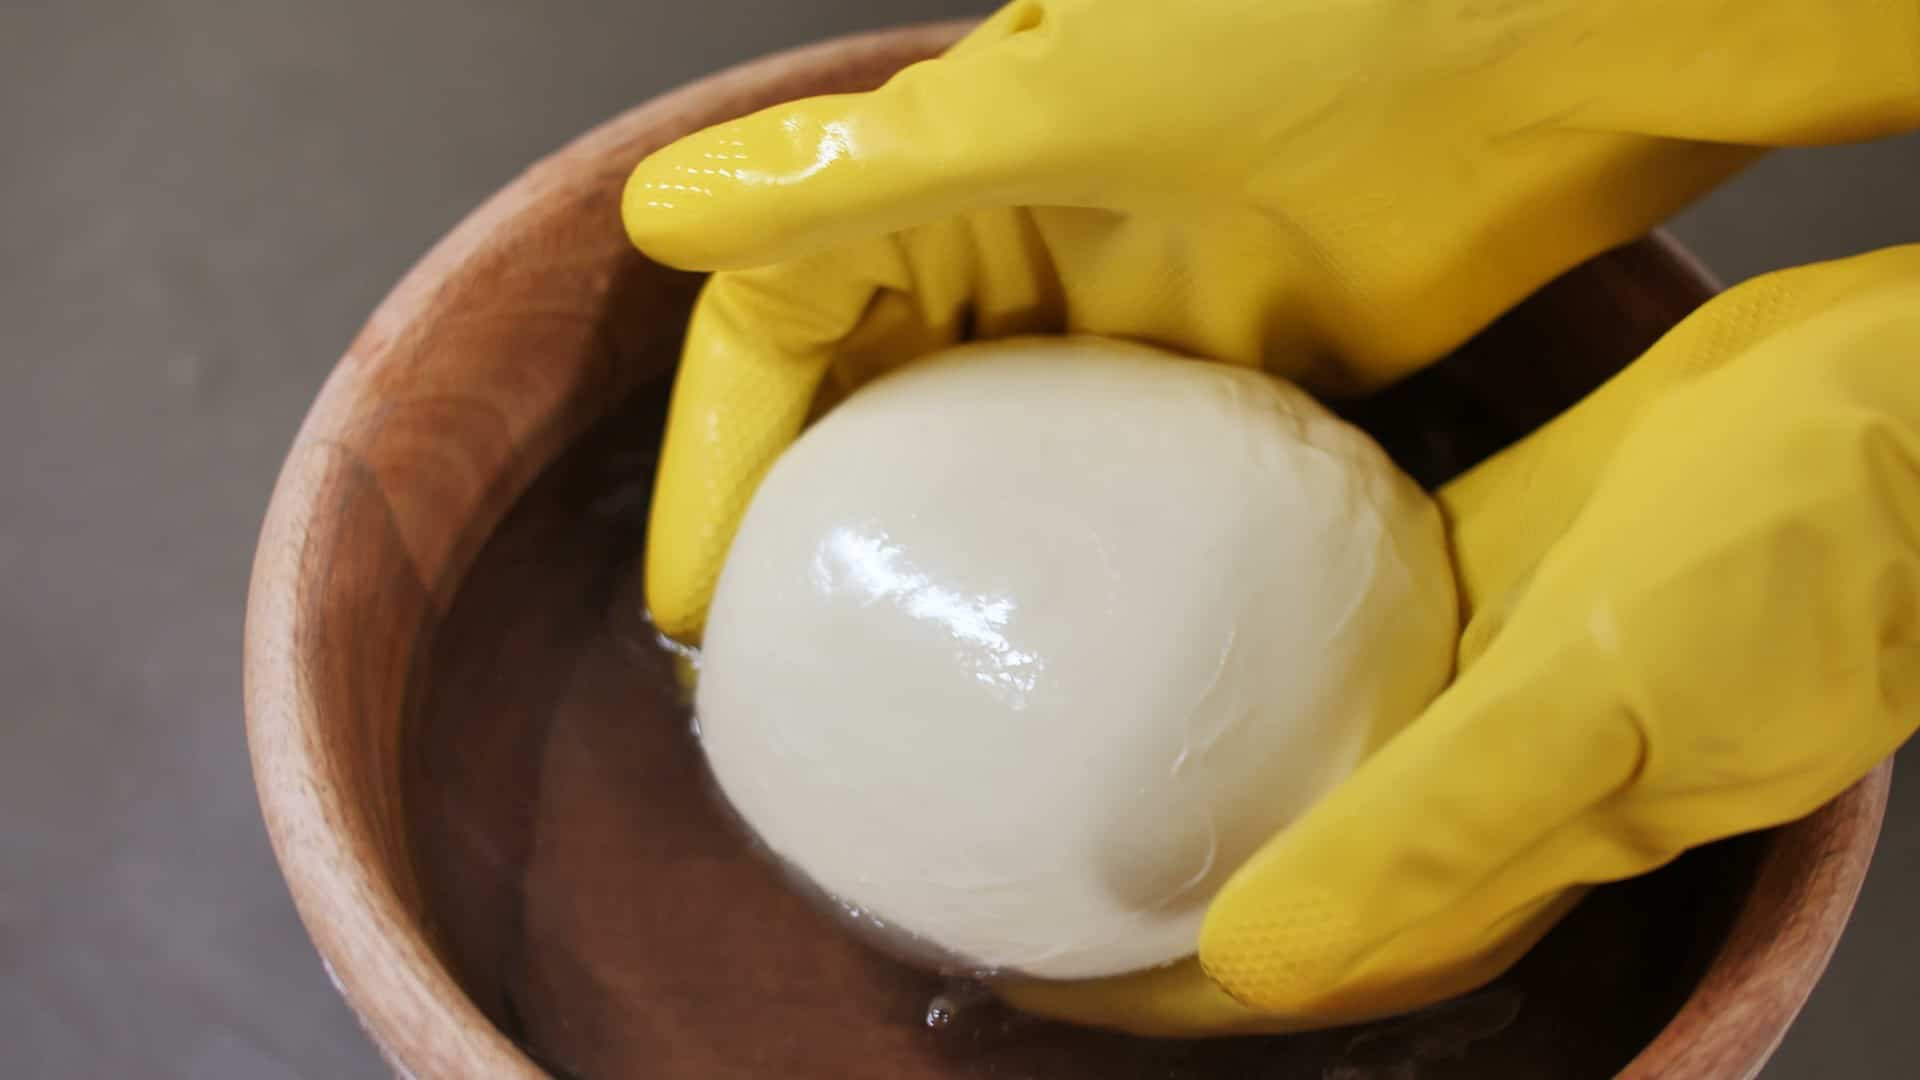 Placing the Homemade Mozzarella Cheese in Water